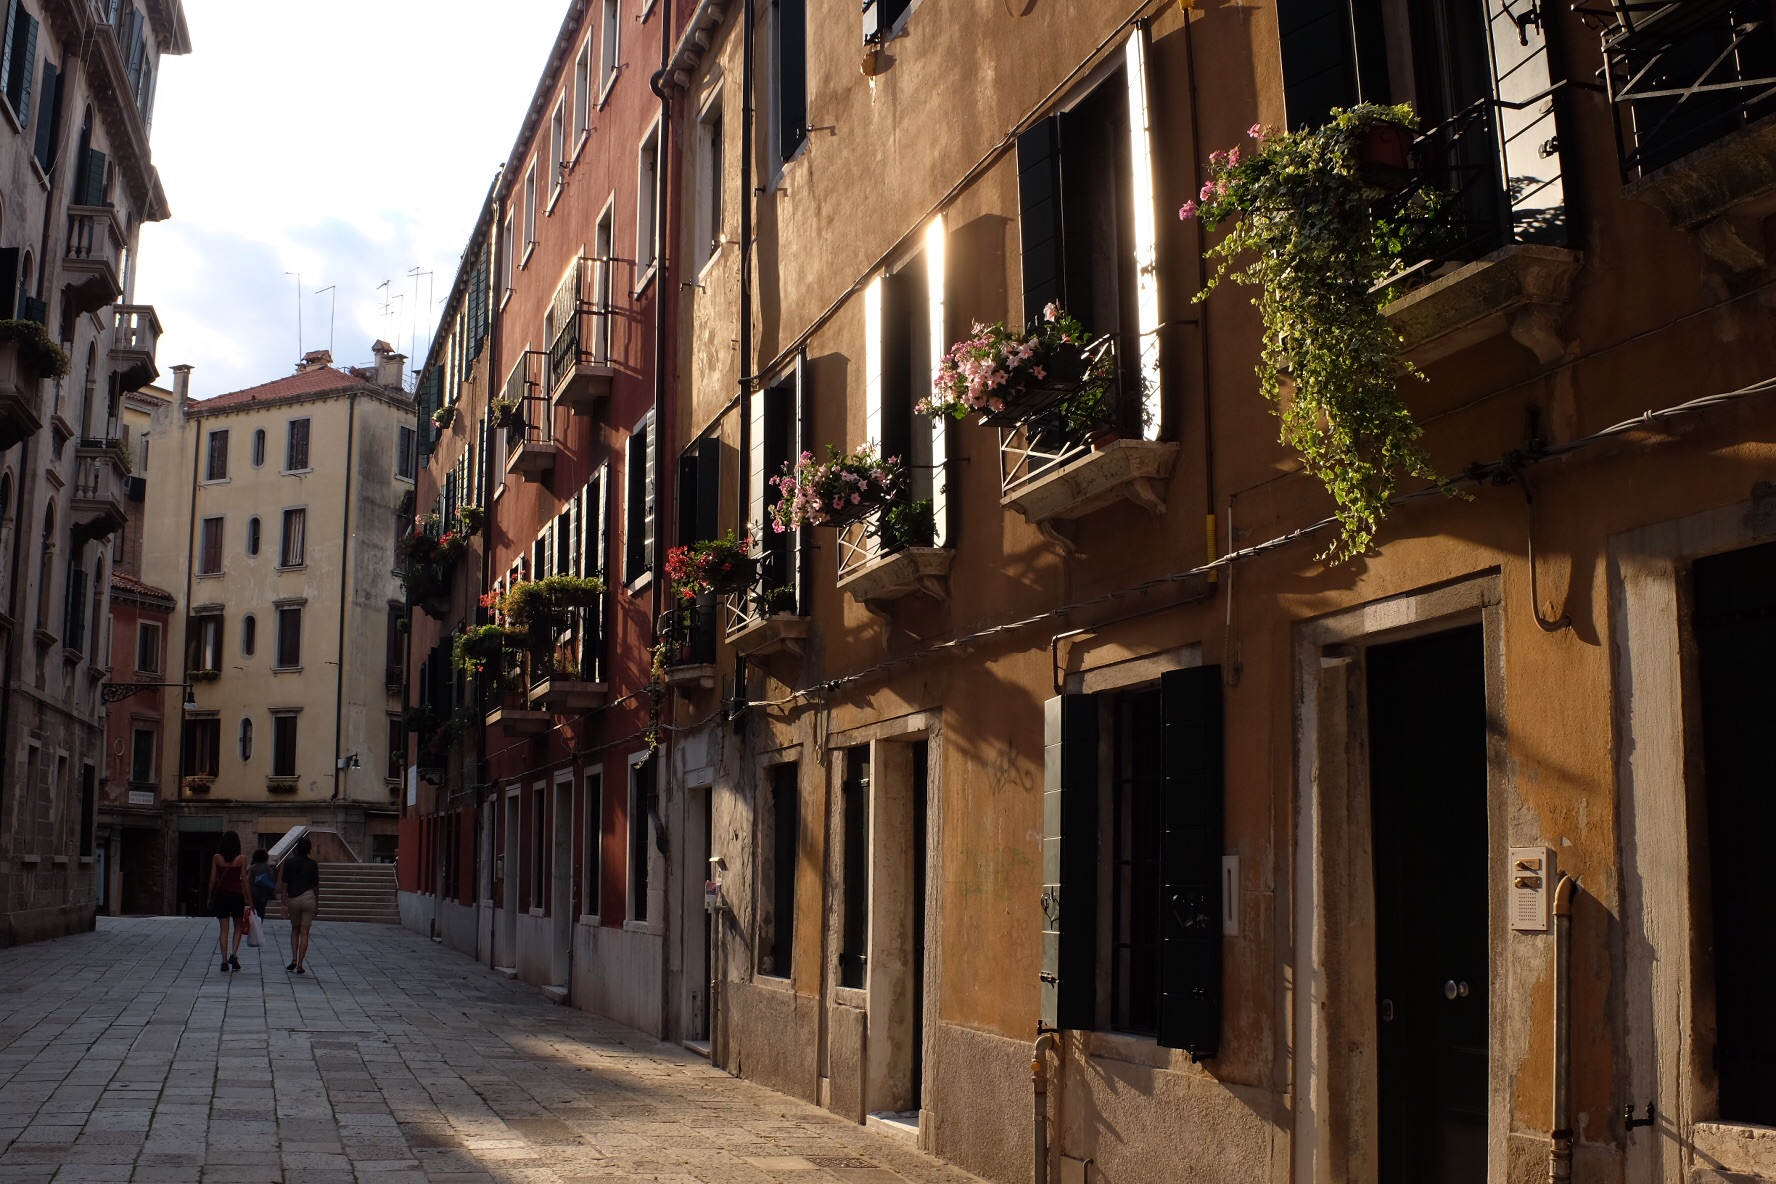 This is a wide street in Venice